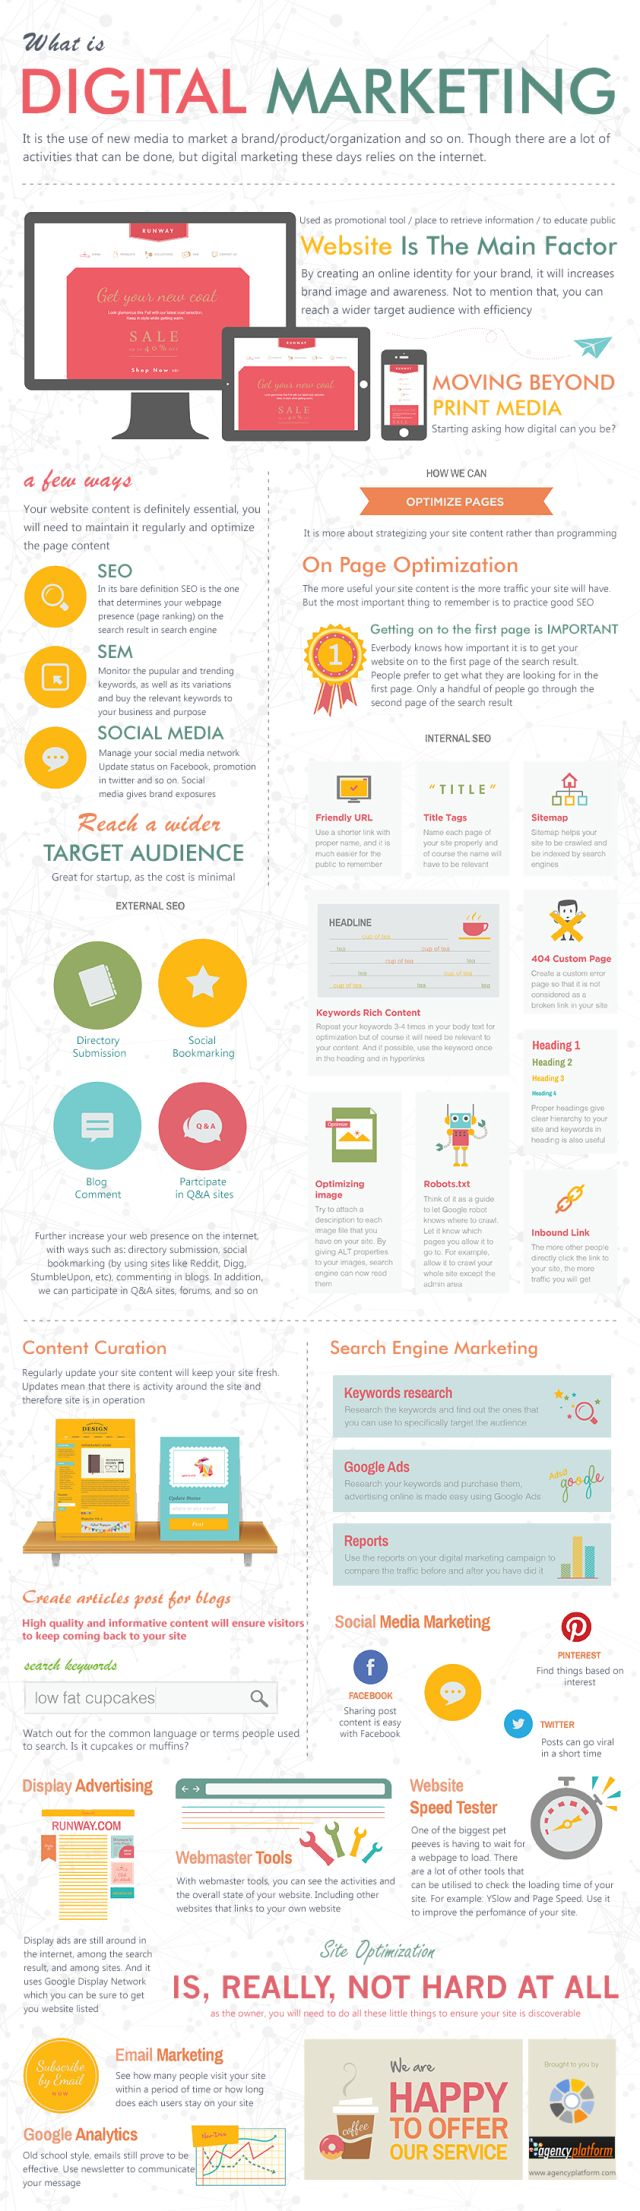 While inbound marketing focuses primarily on the acquisition of leads through your digital marketing efforts, this is an infographic from Social Media